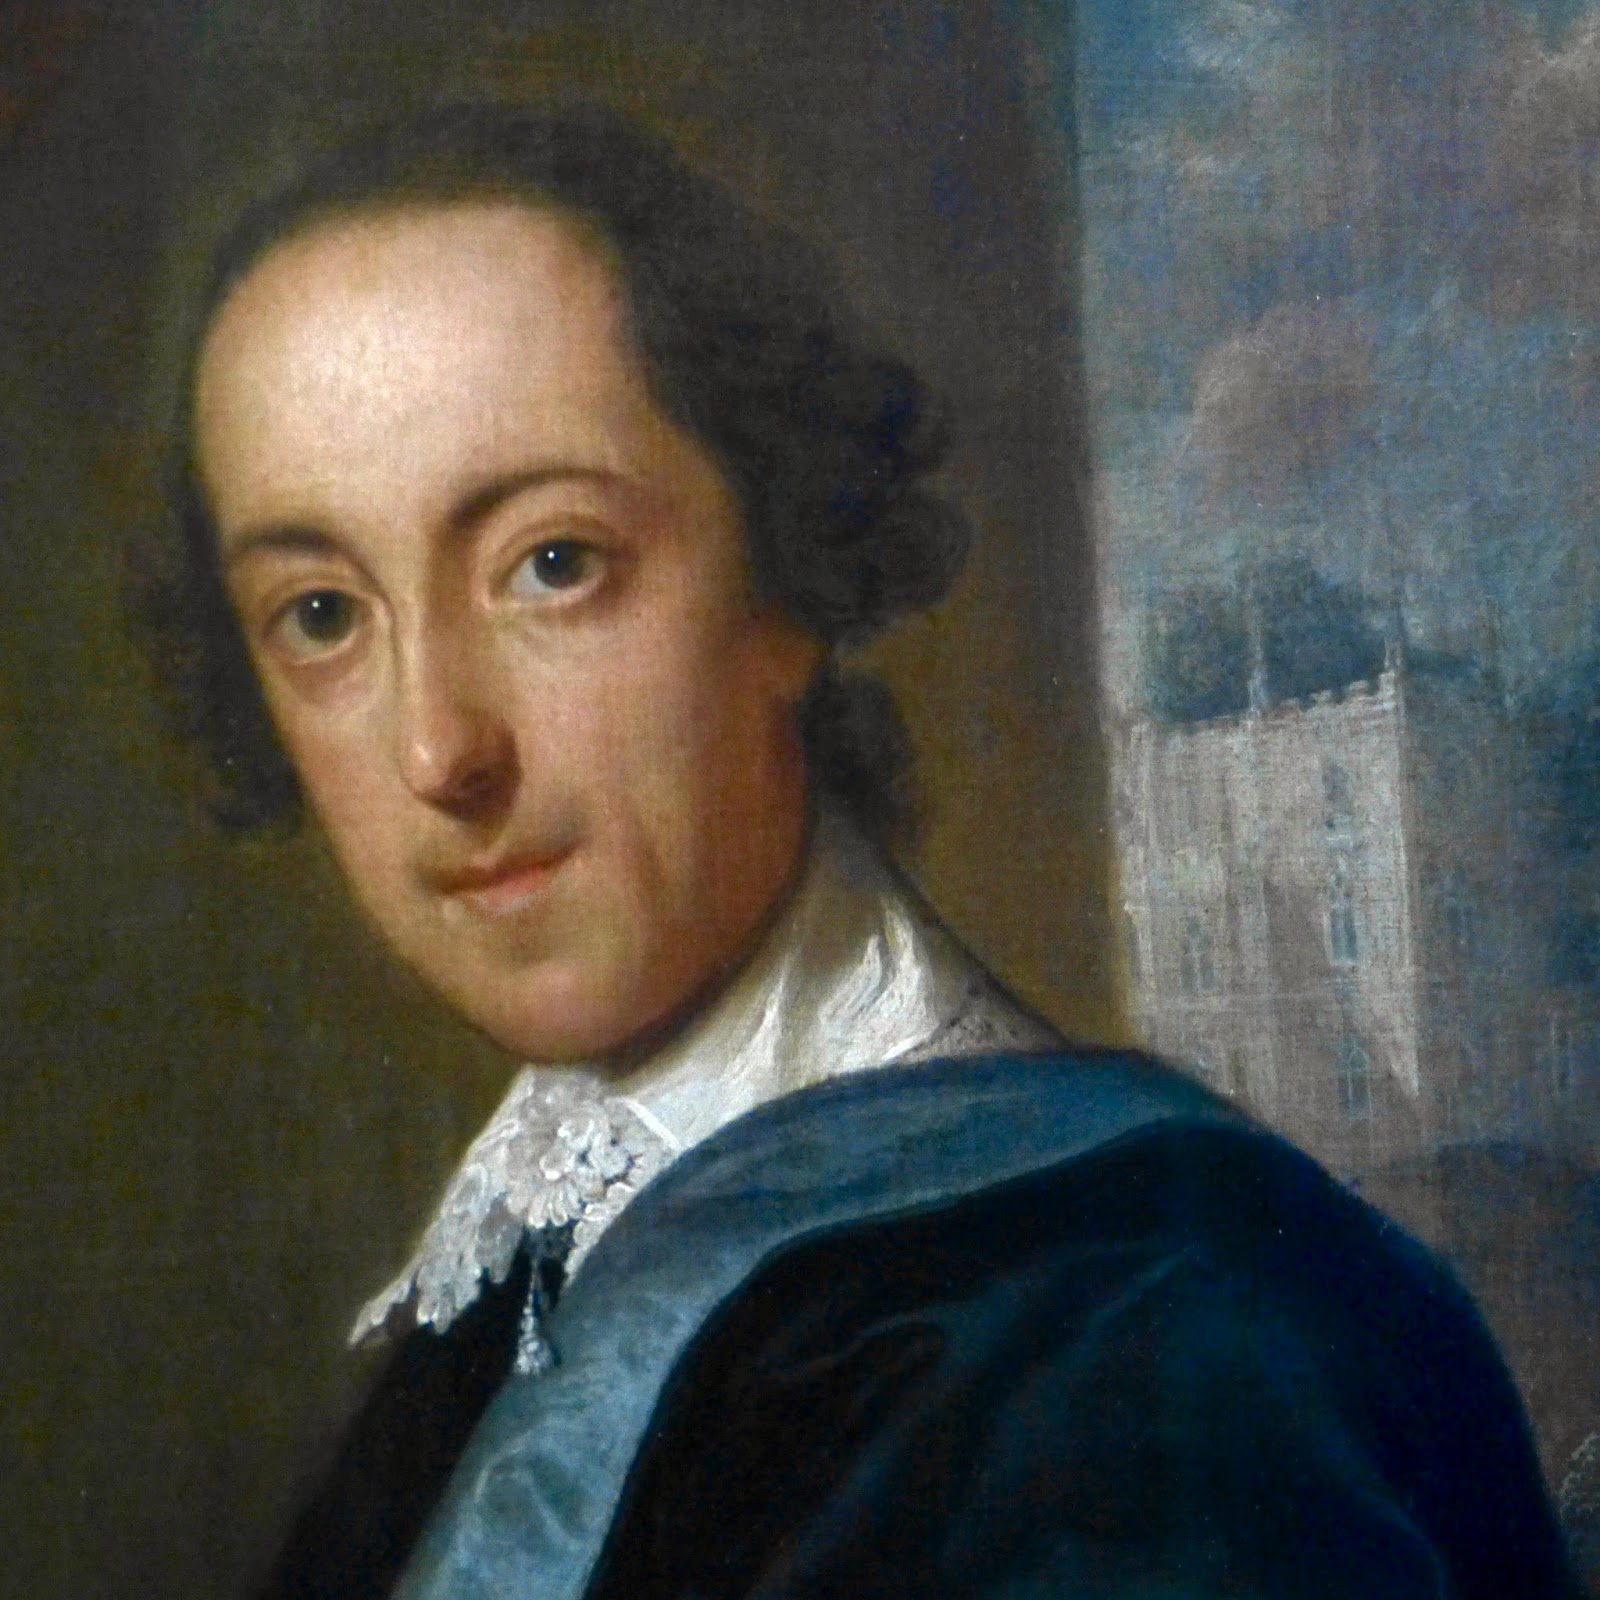 Horace Walpole from a portrait by John Giles Eccardt (1747-8)